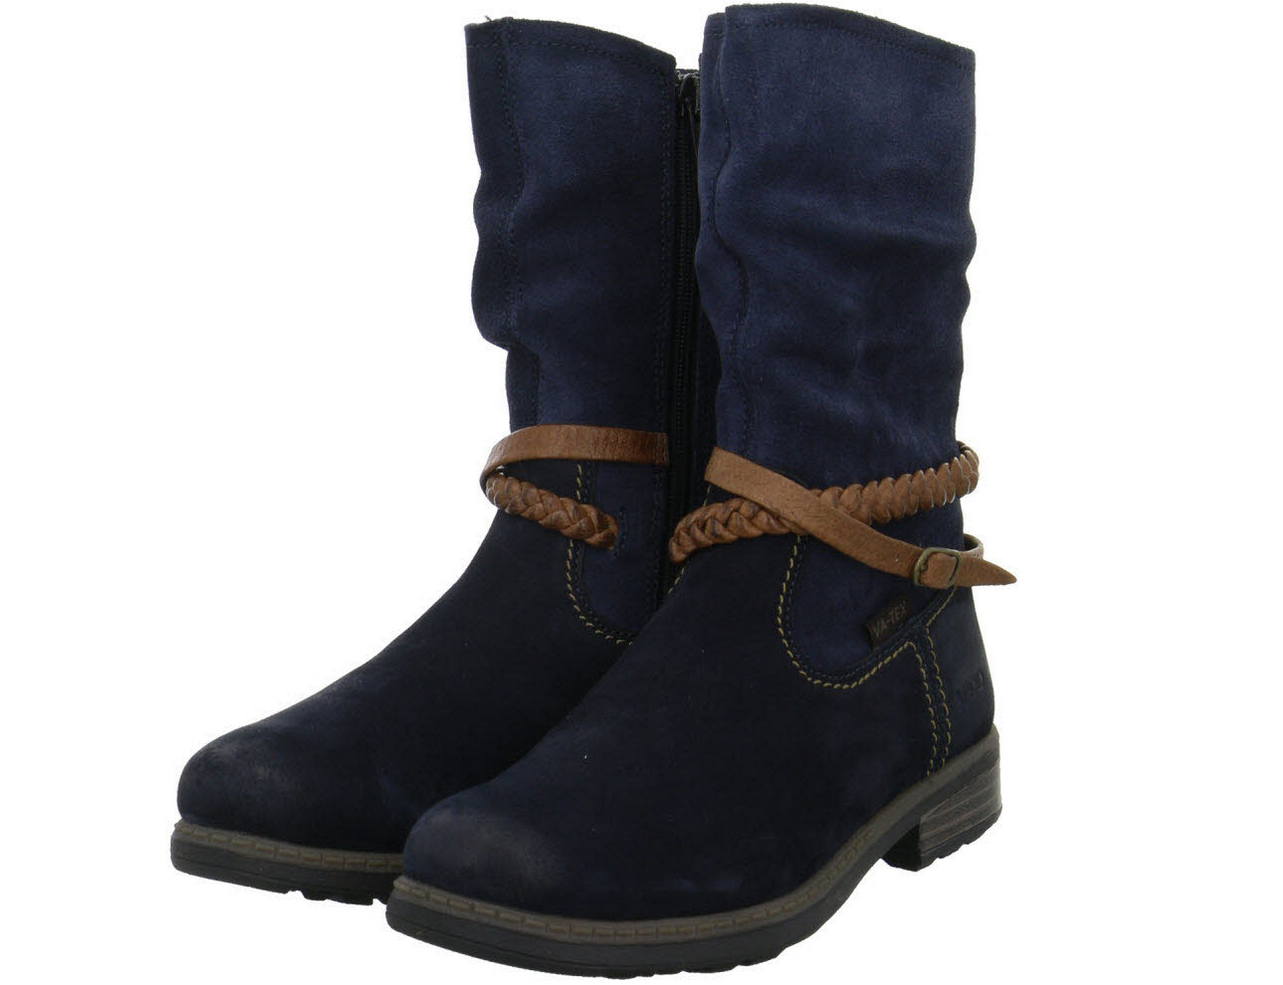 Blue 2019 In KidsVado Boots Leiser Stiefel nNm0vwO8